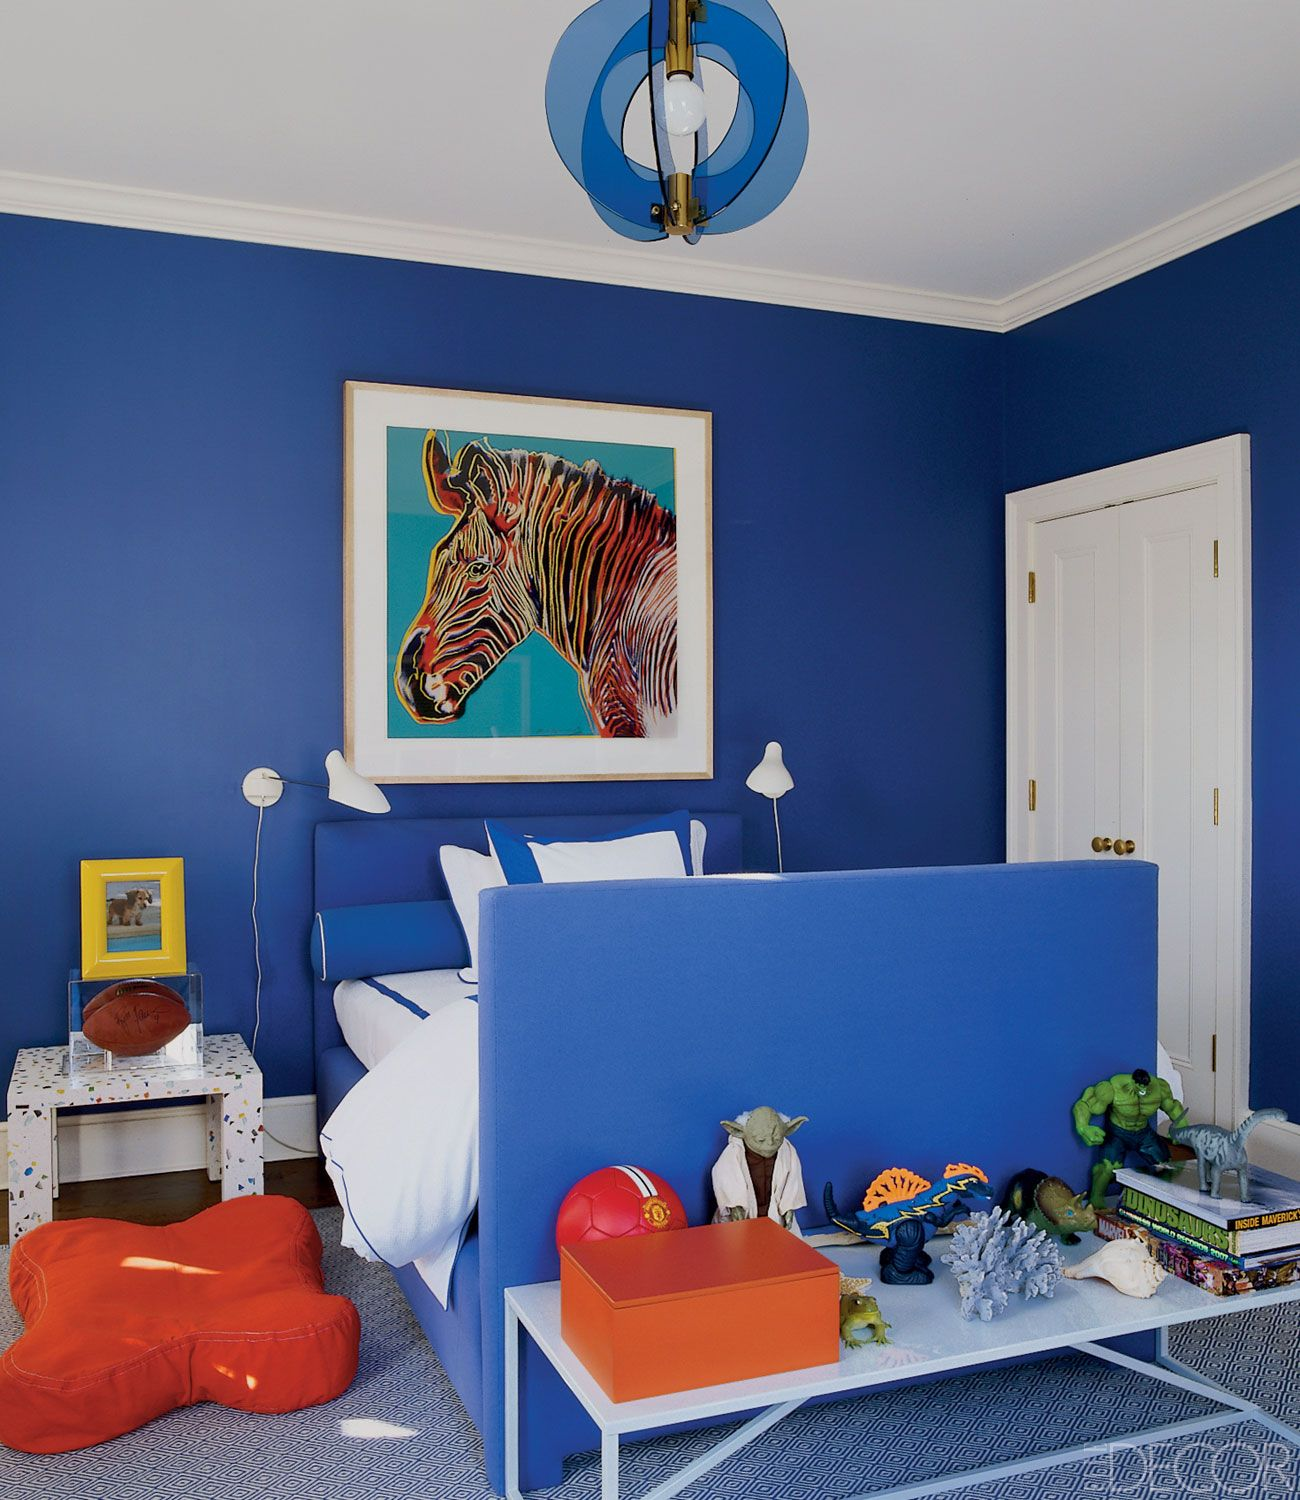 15 cool boys bedroom ideas decorating a little boy room - Boys Room Ideas